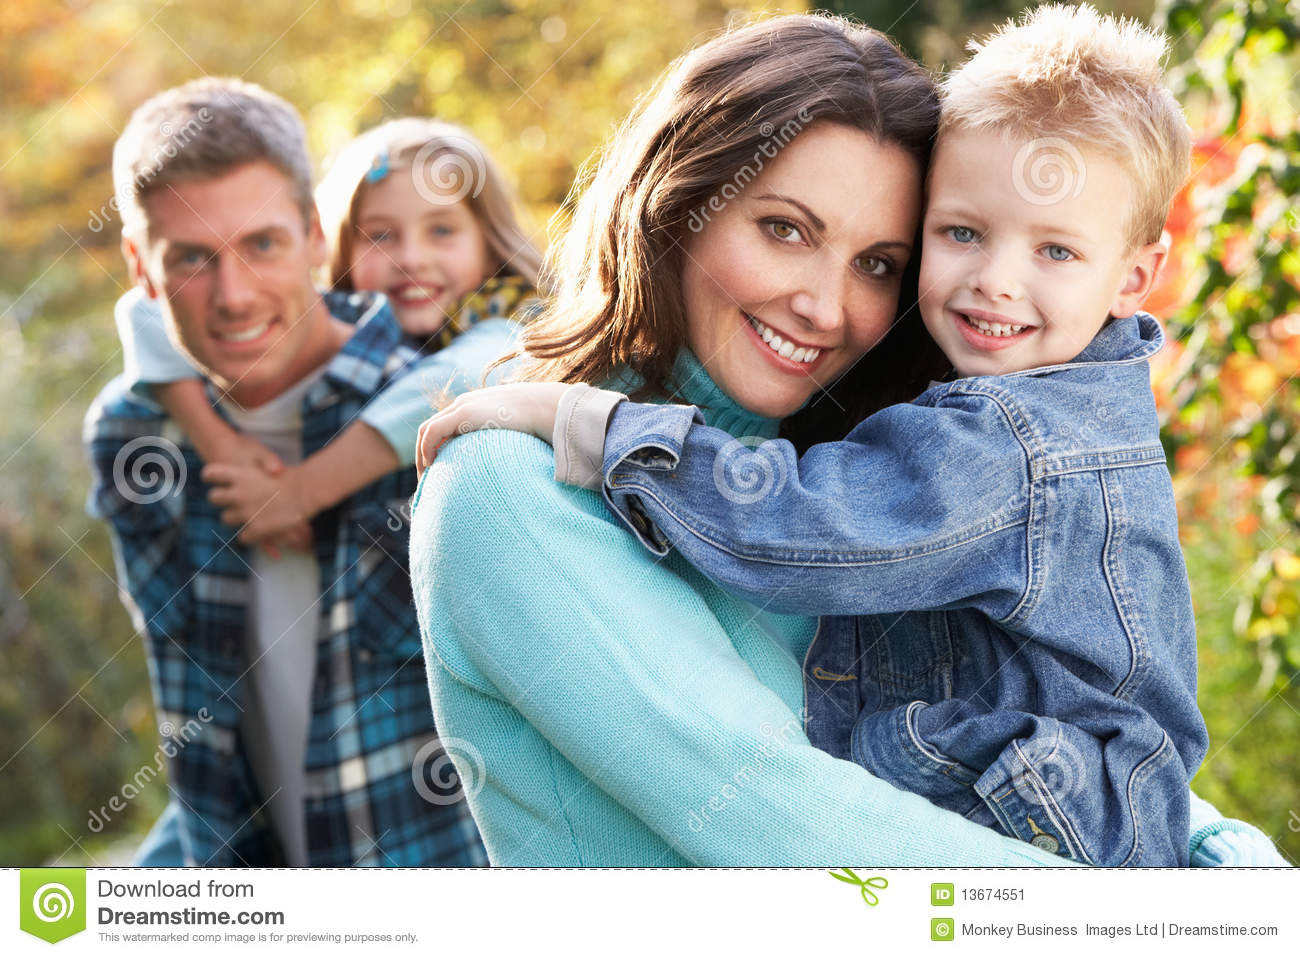 Family Group Outdoors In Autumn Landscape